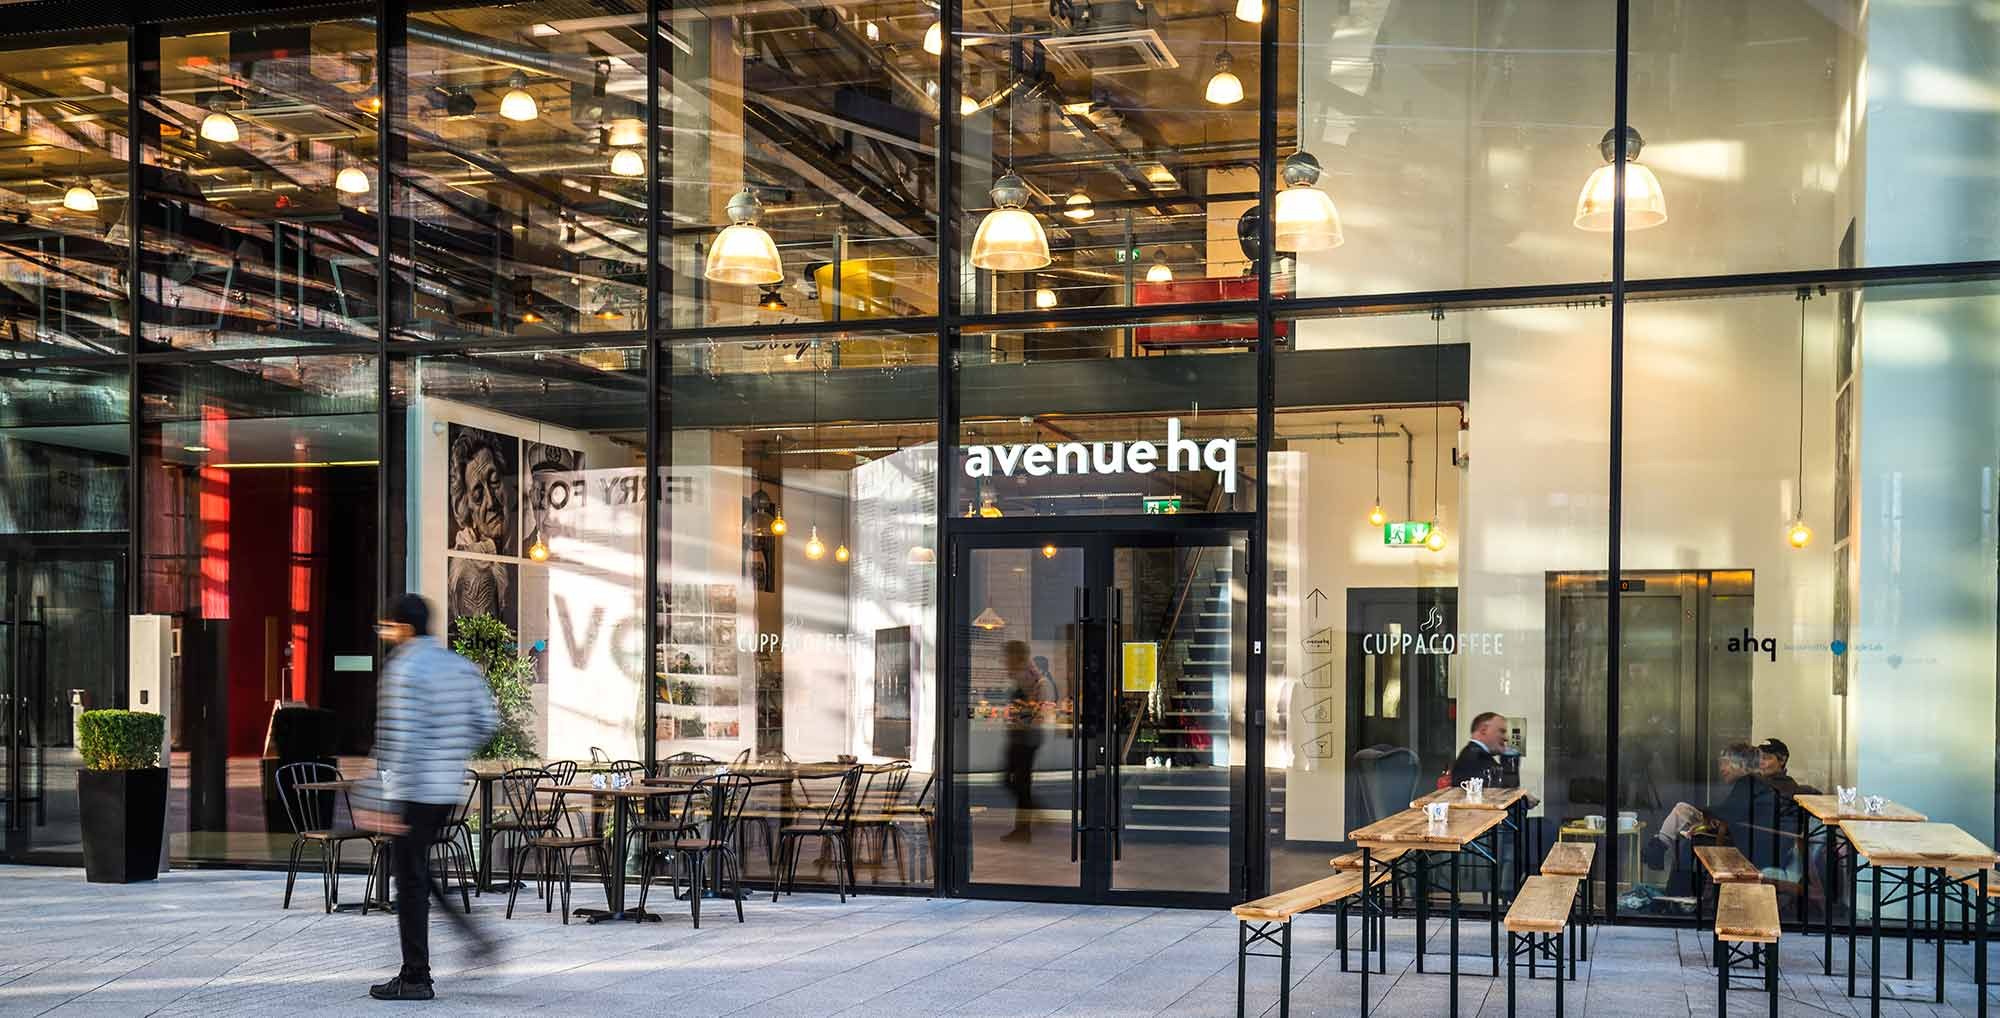 New Client Website Launched: Avenue HQ